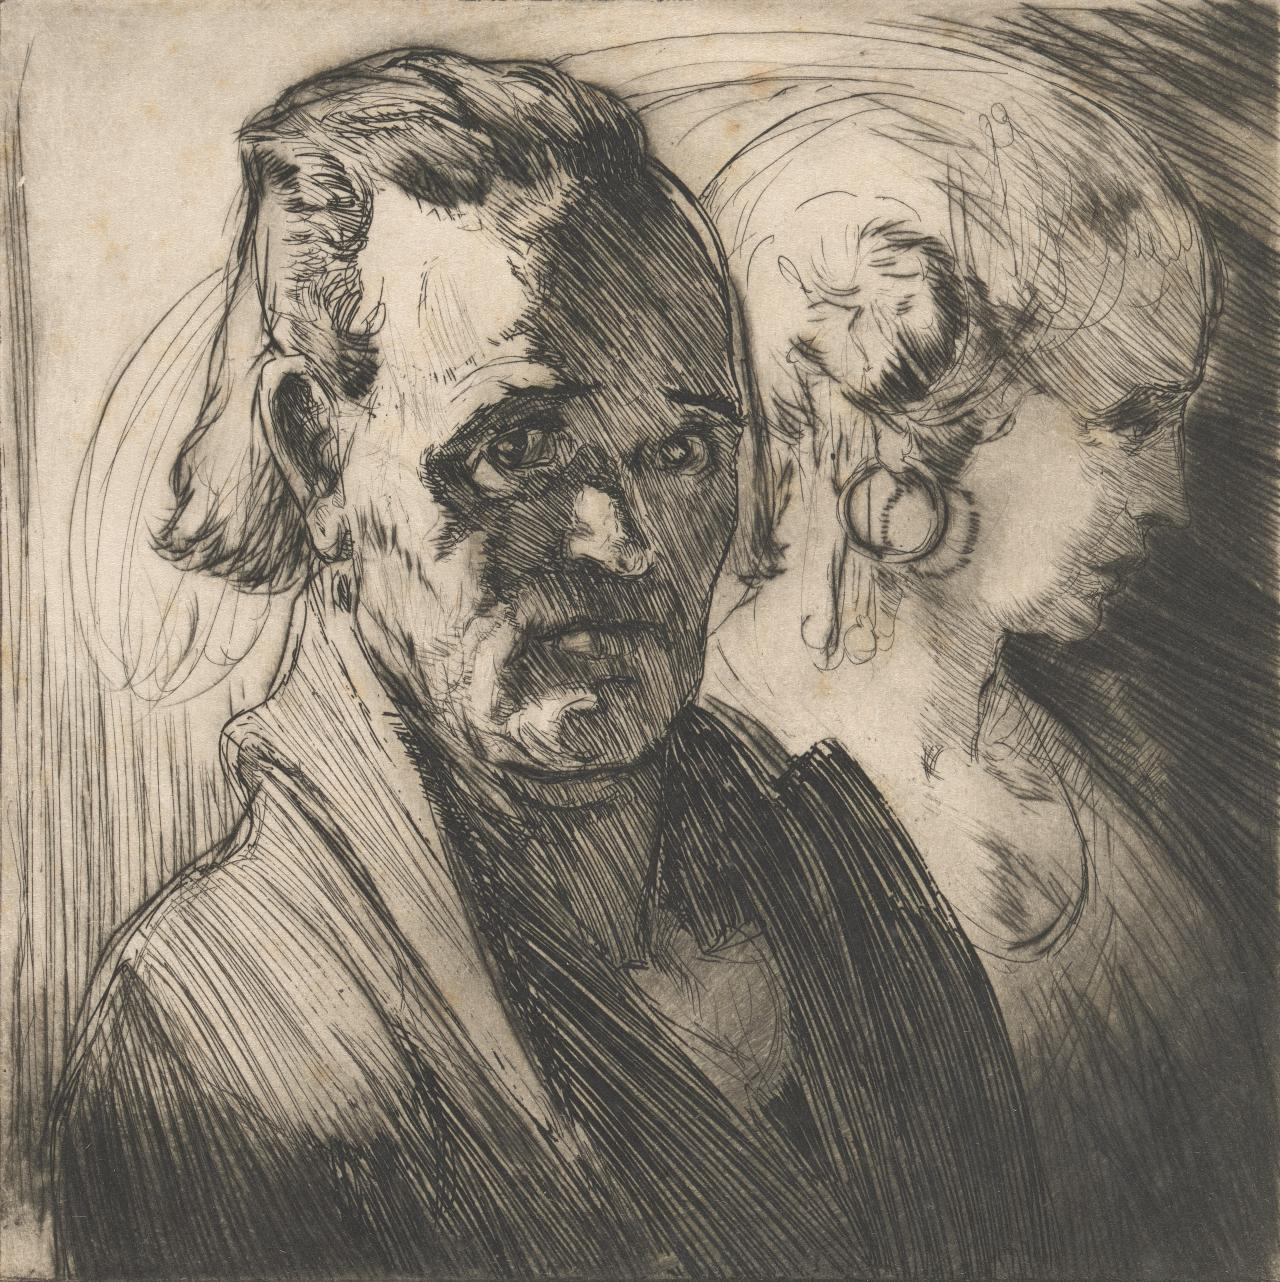 (Untitled) (Man with woman in profile in background)